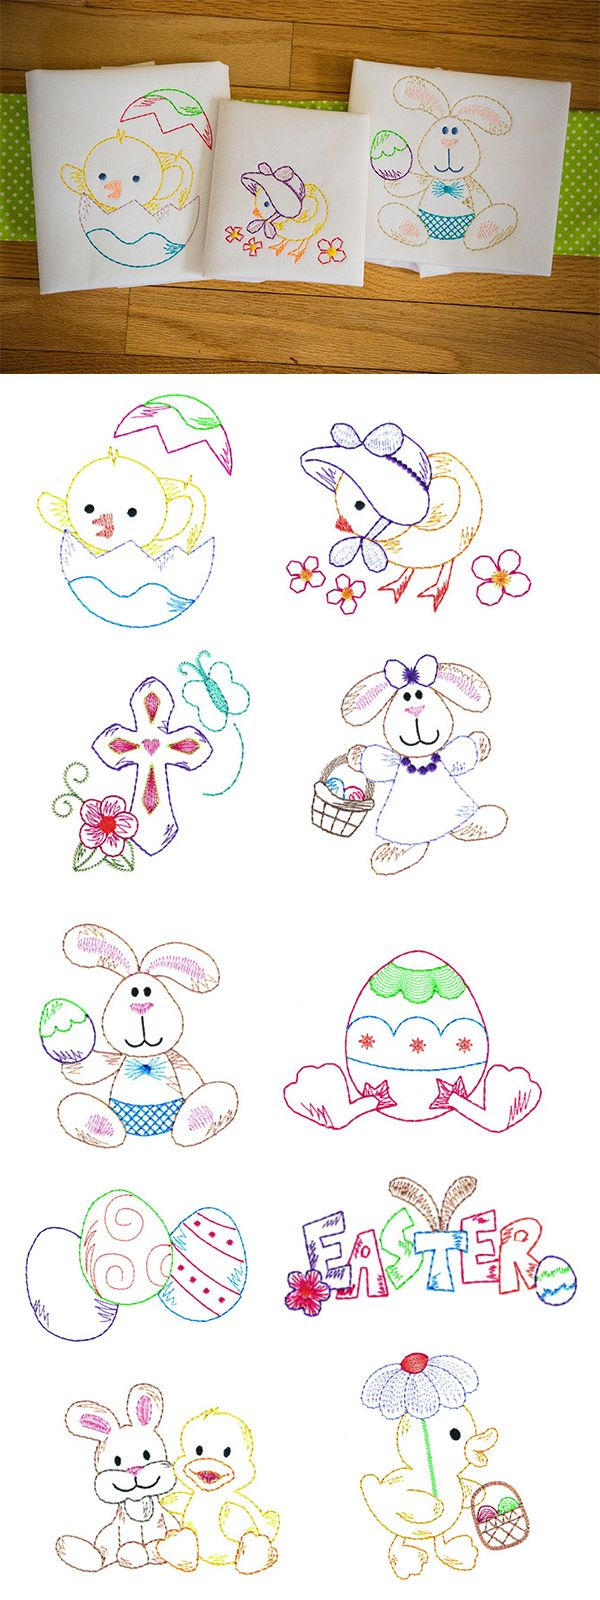 10 Simply Adorable Vintage Style Easter Designs Do You Love That Hand